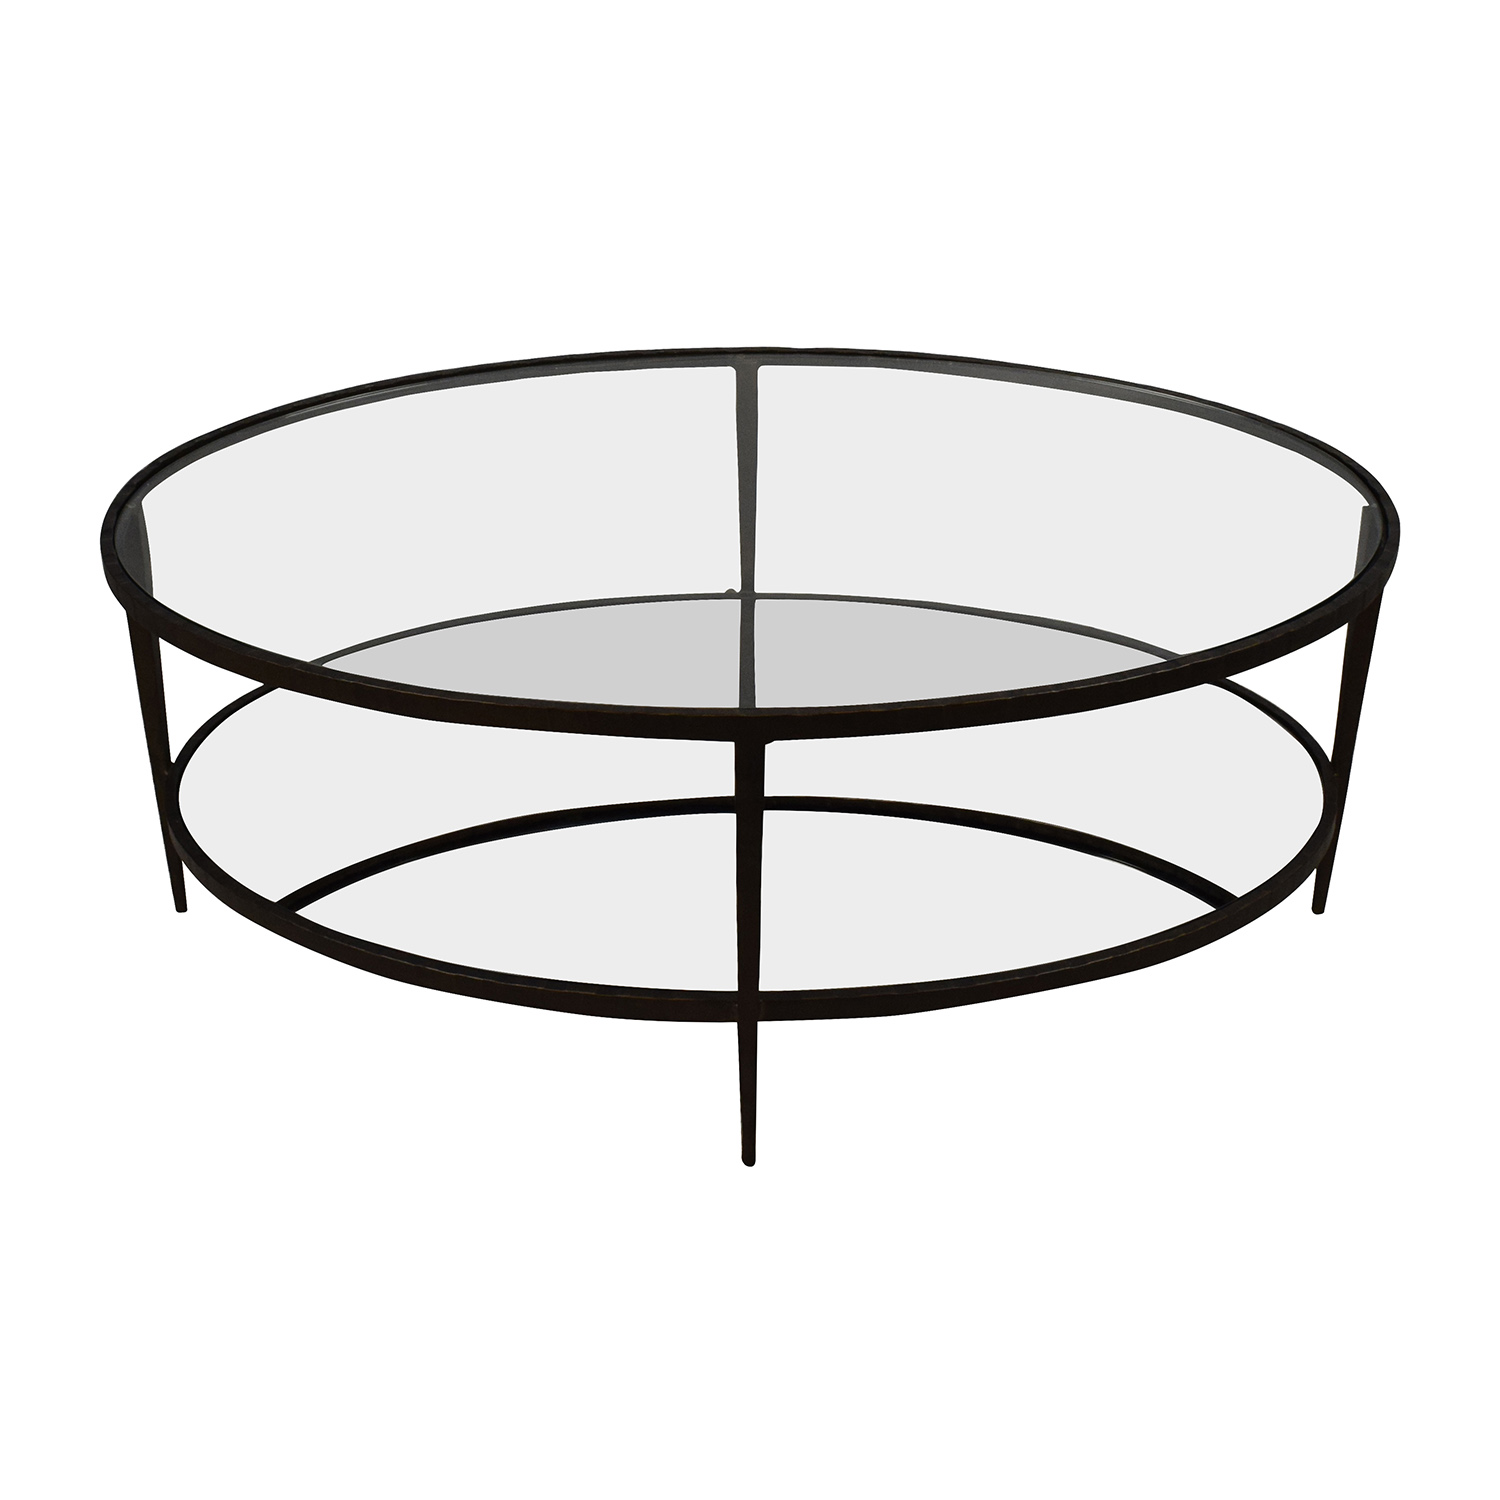 Crate & Barrel Crate & Barrel Clairmont Glass Coffee Table on sale